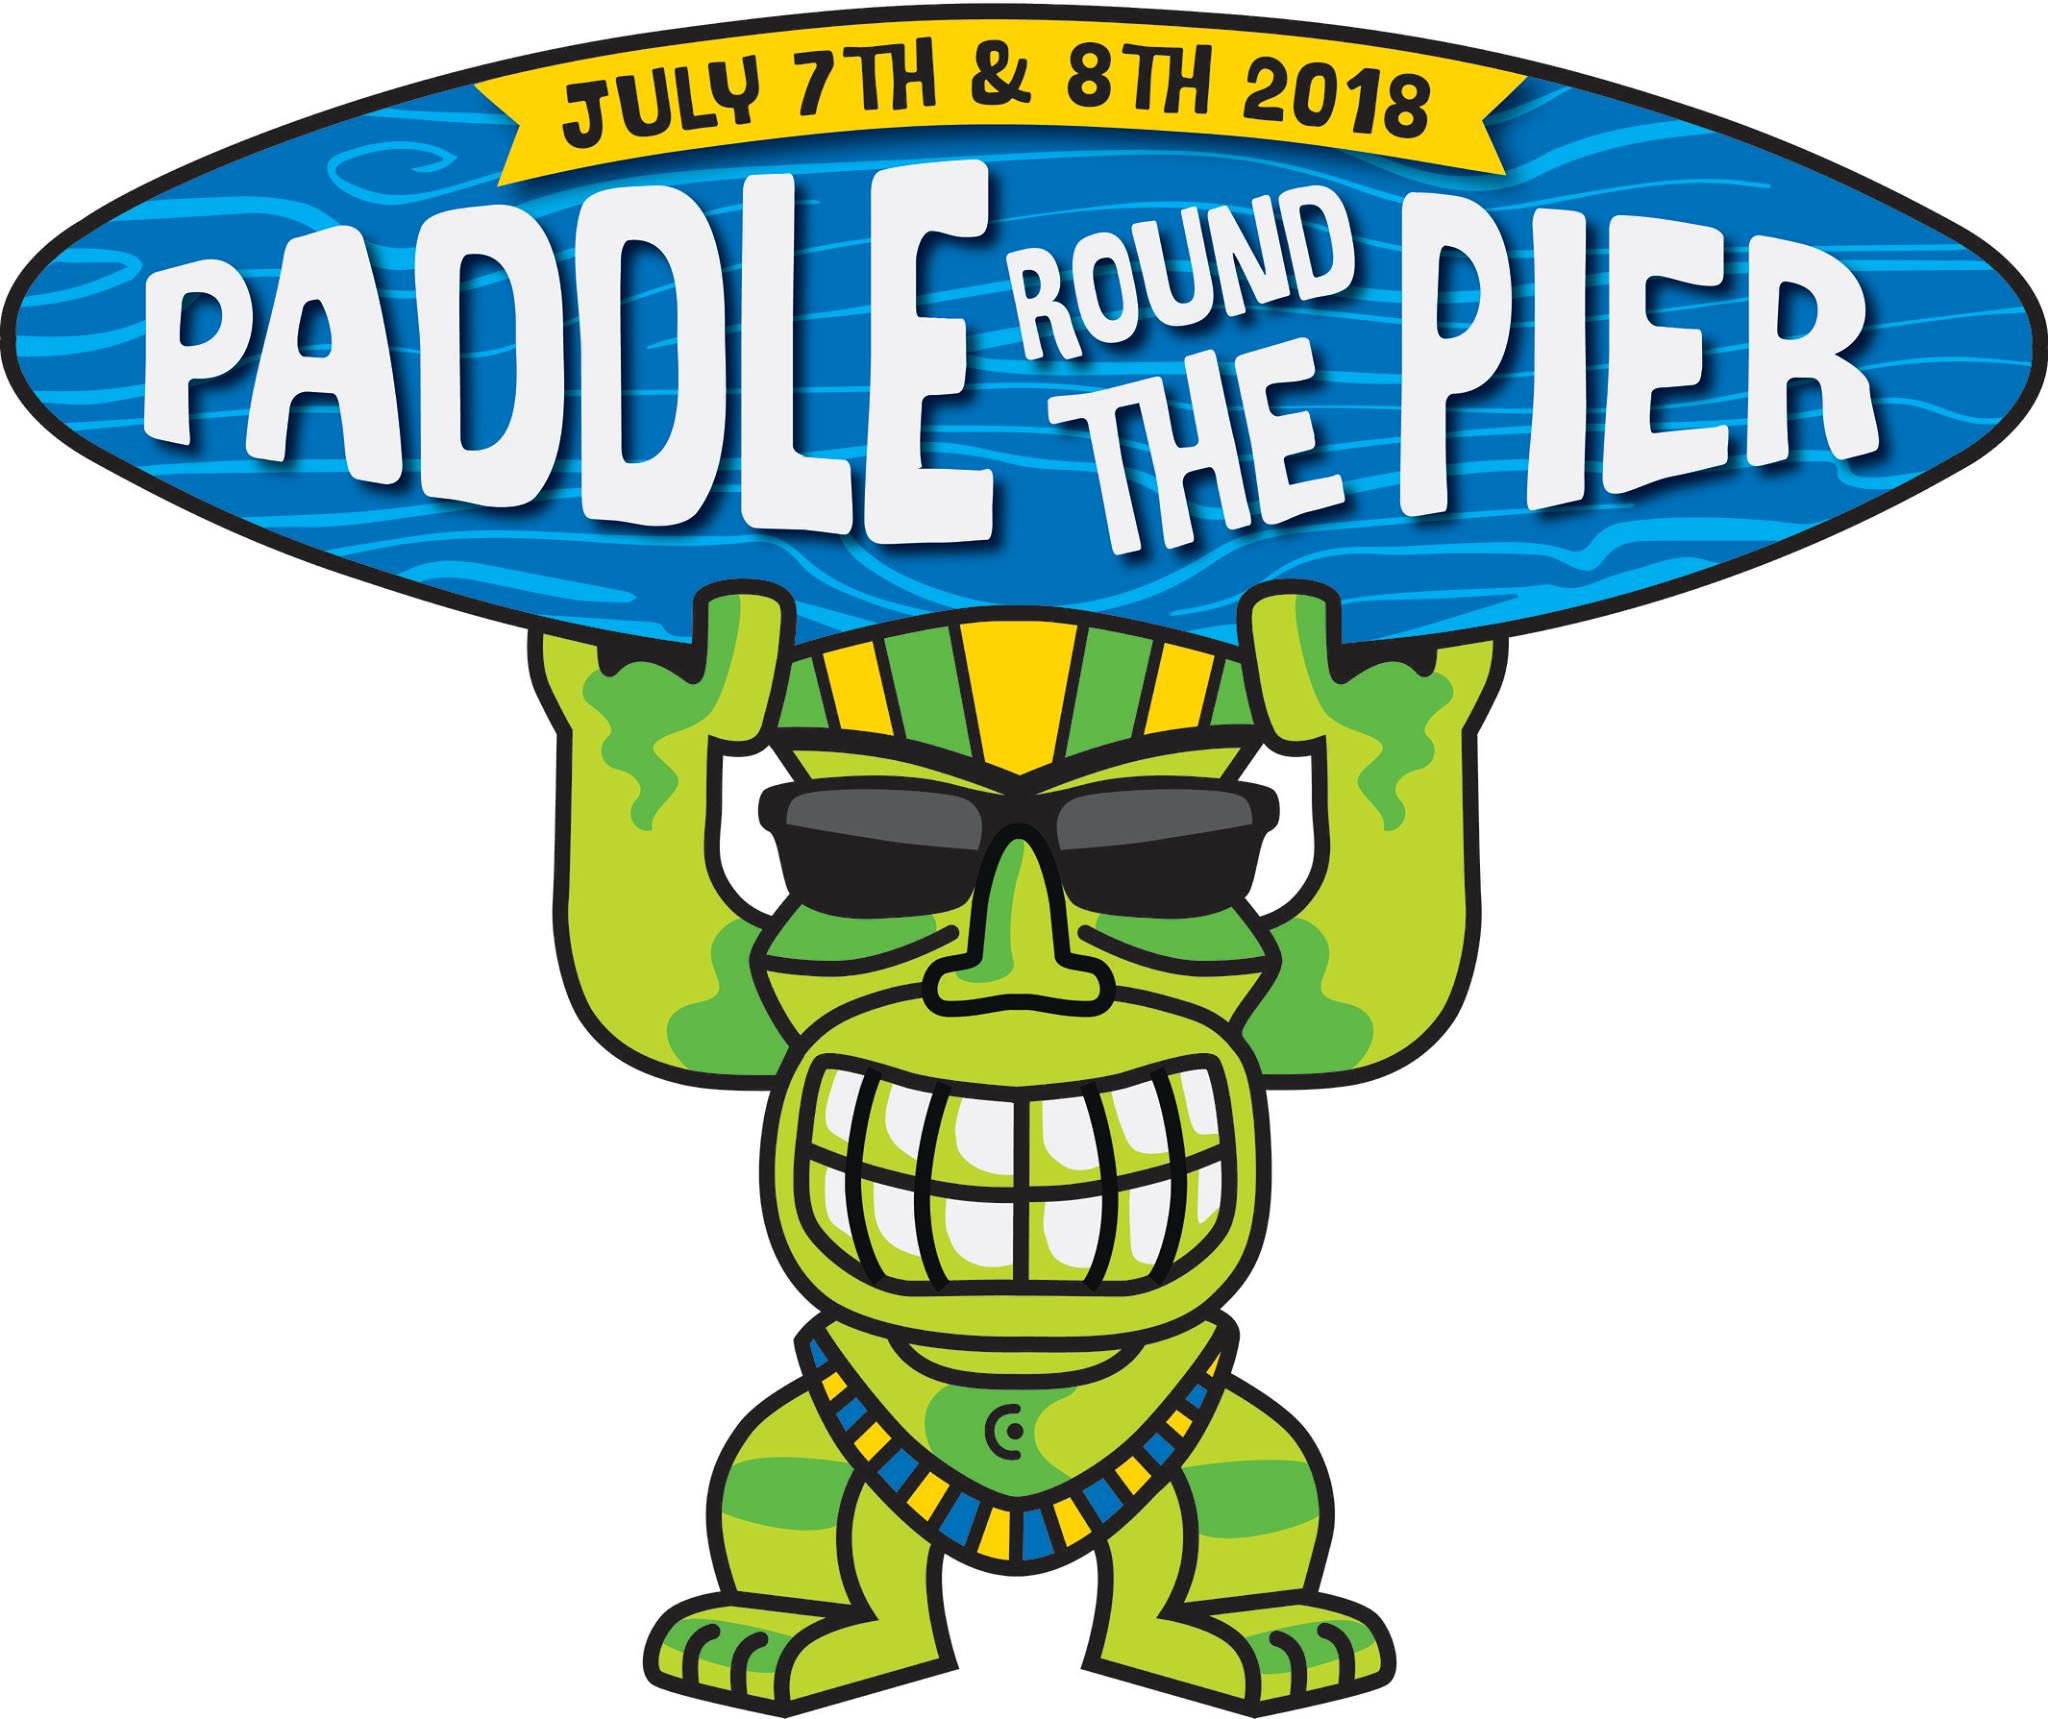 Paddle Round the Pier 2018